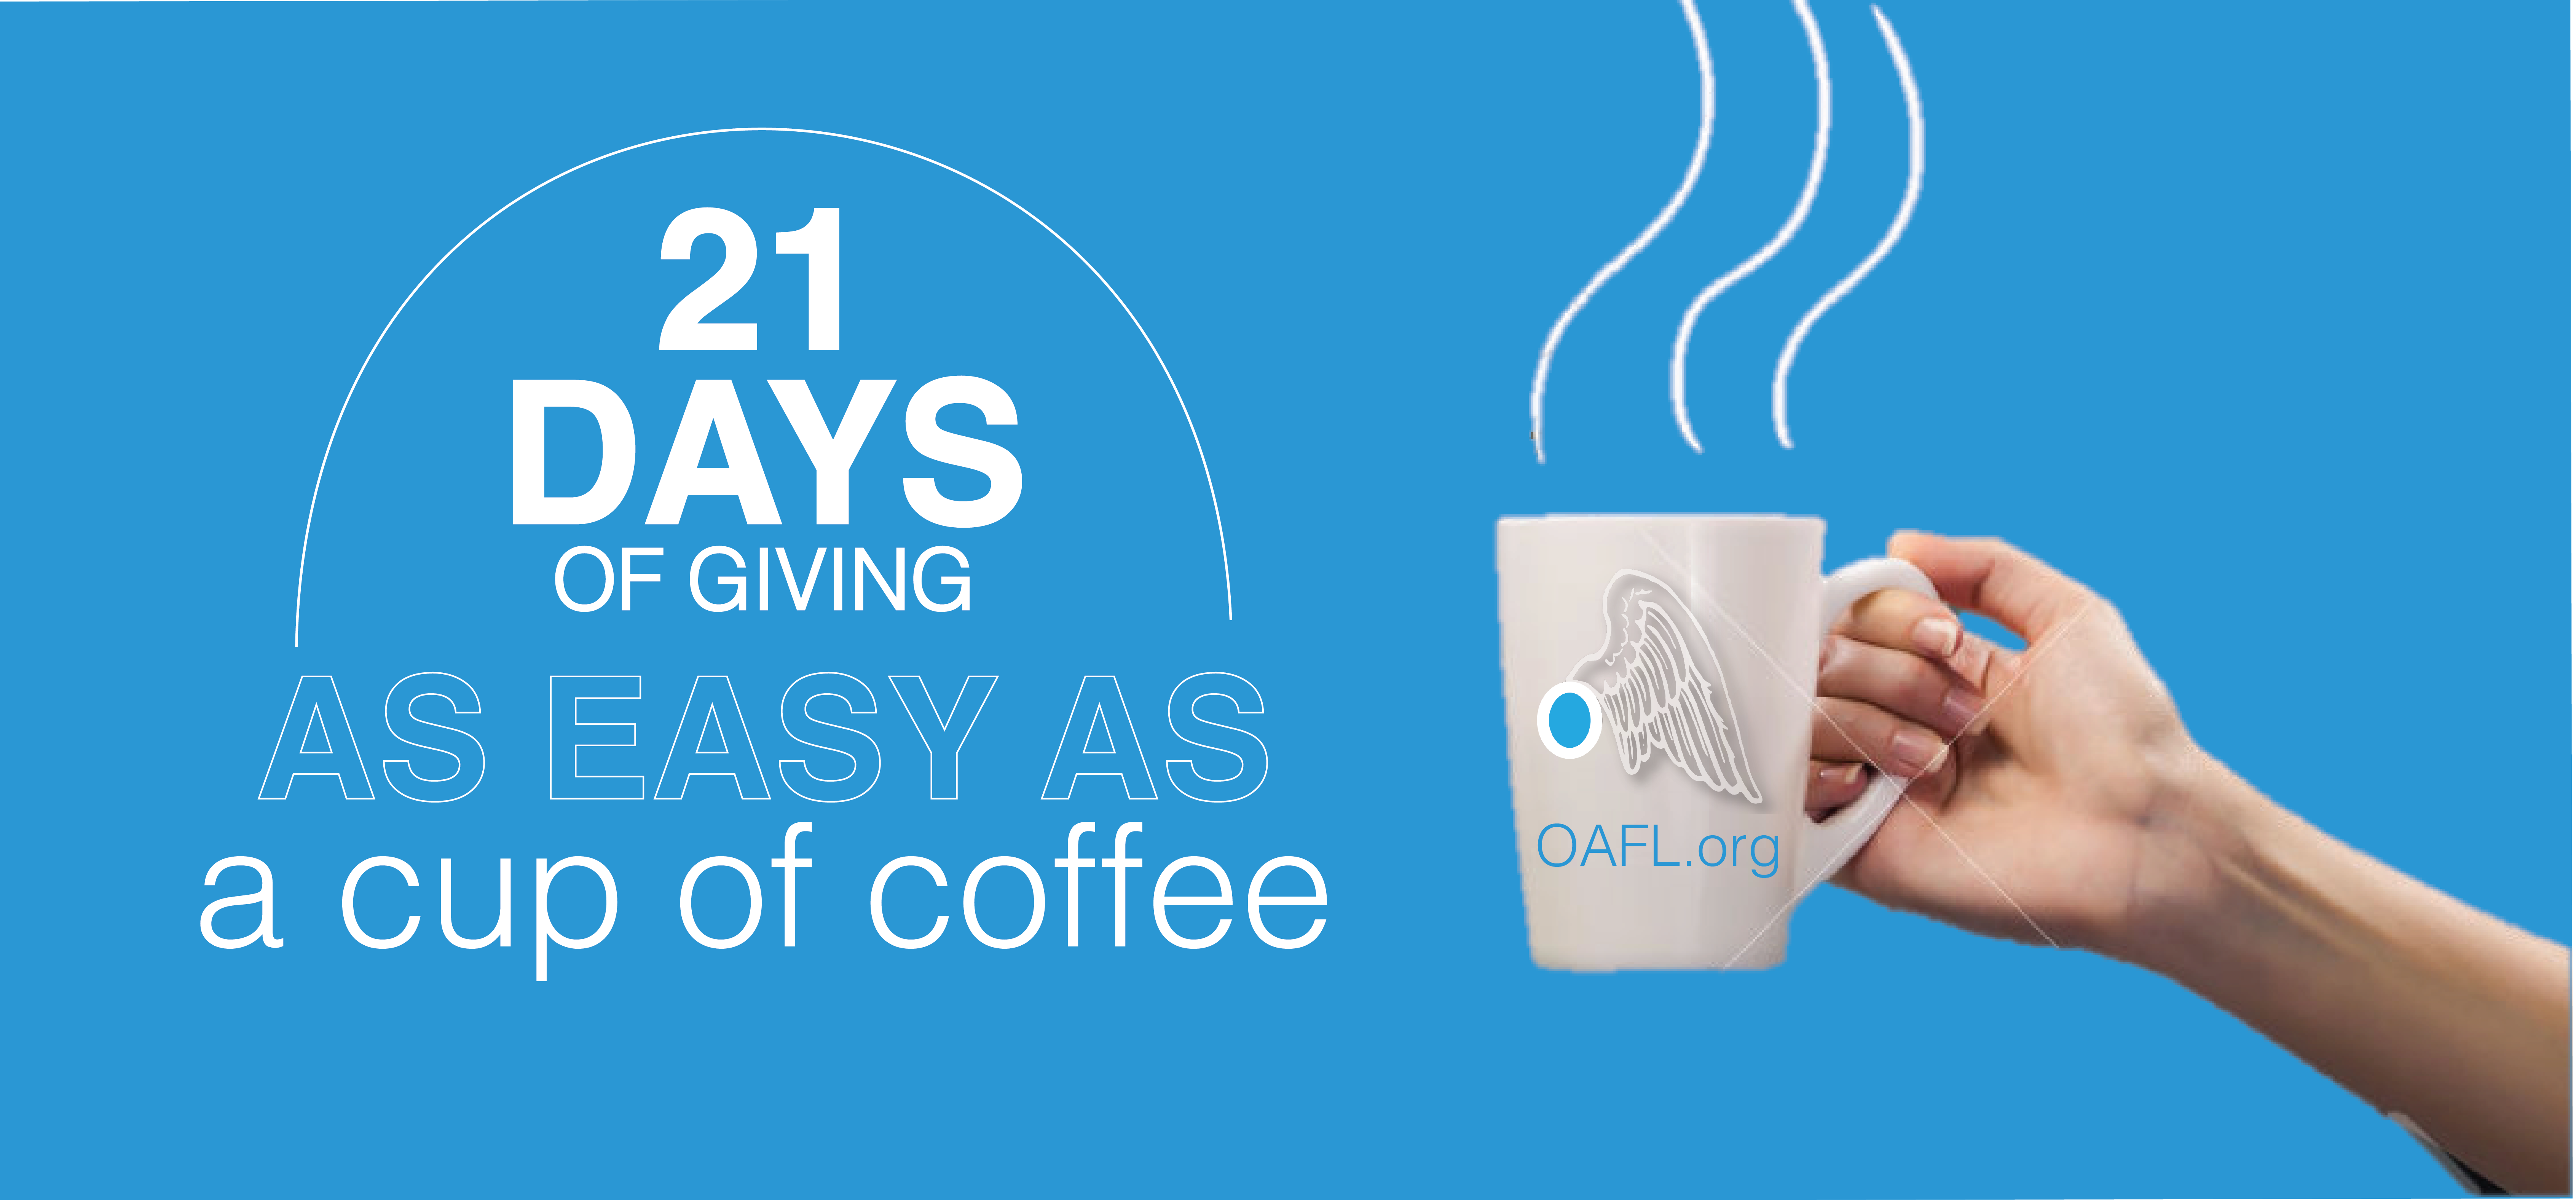 ShoutOut our #21Days2Give campaign to your entire network. Check it out here. http://shoutout.wix.com/so/1LHo1_rE?cid=0